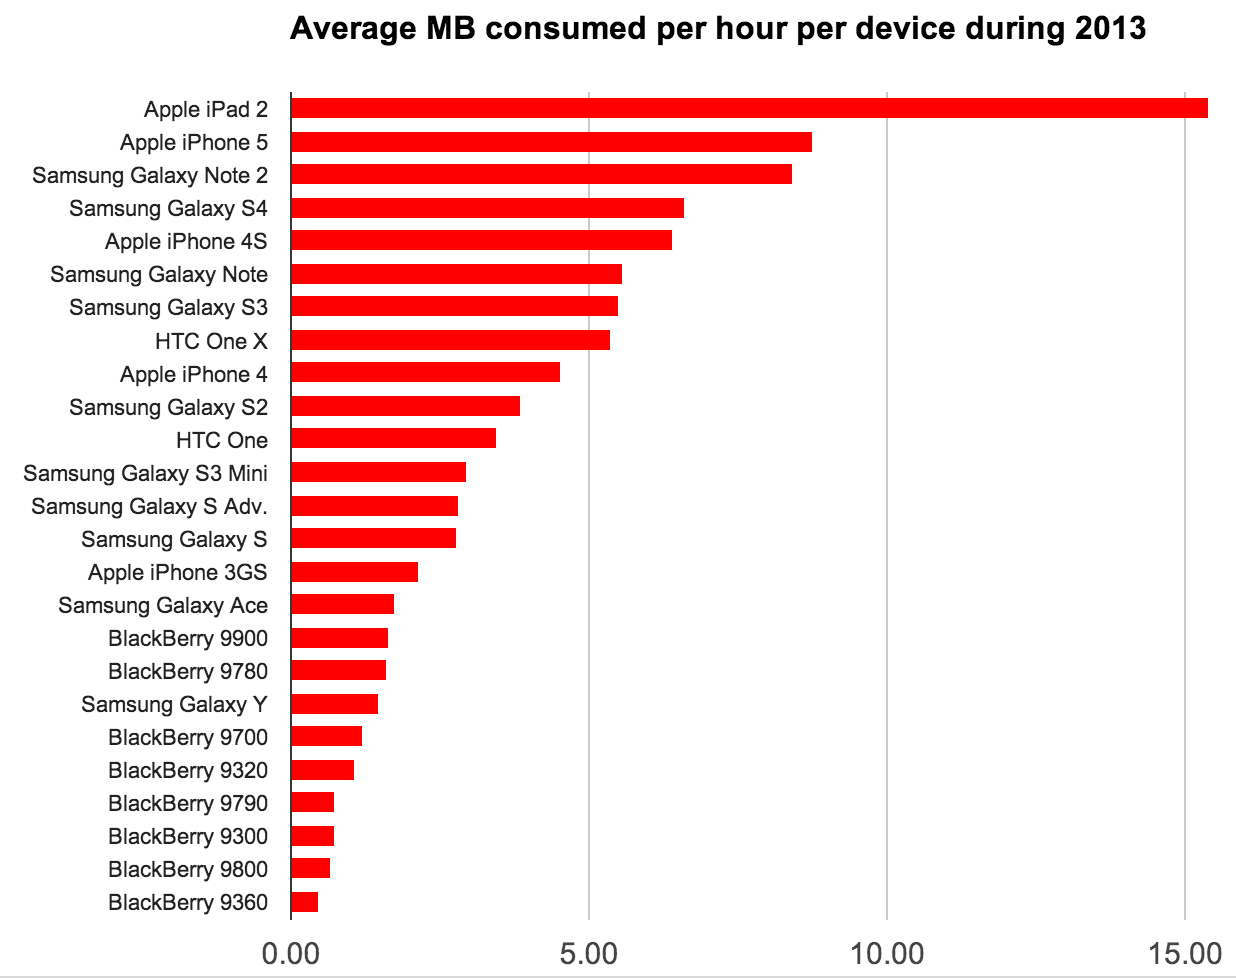 Judged by device, the iPad 2 sucked the most data per hour off carrier networks. Among phones, though, the iPhone 5 was tops. The data reflects real-world usage for the full 2013 calendar year, so newer phones don't rank as highly as those that were used year round.